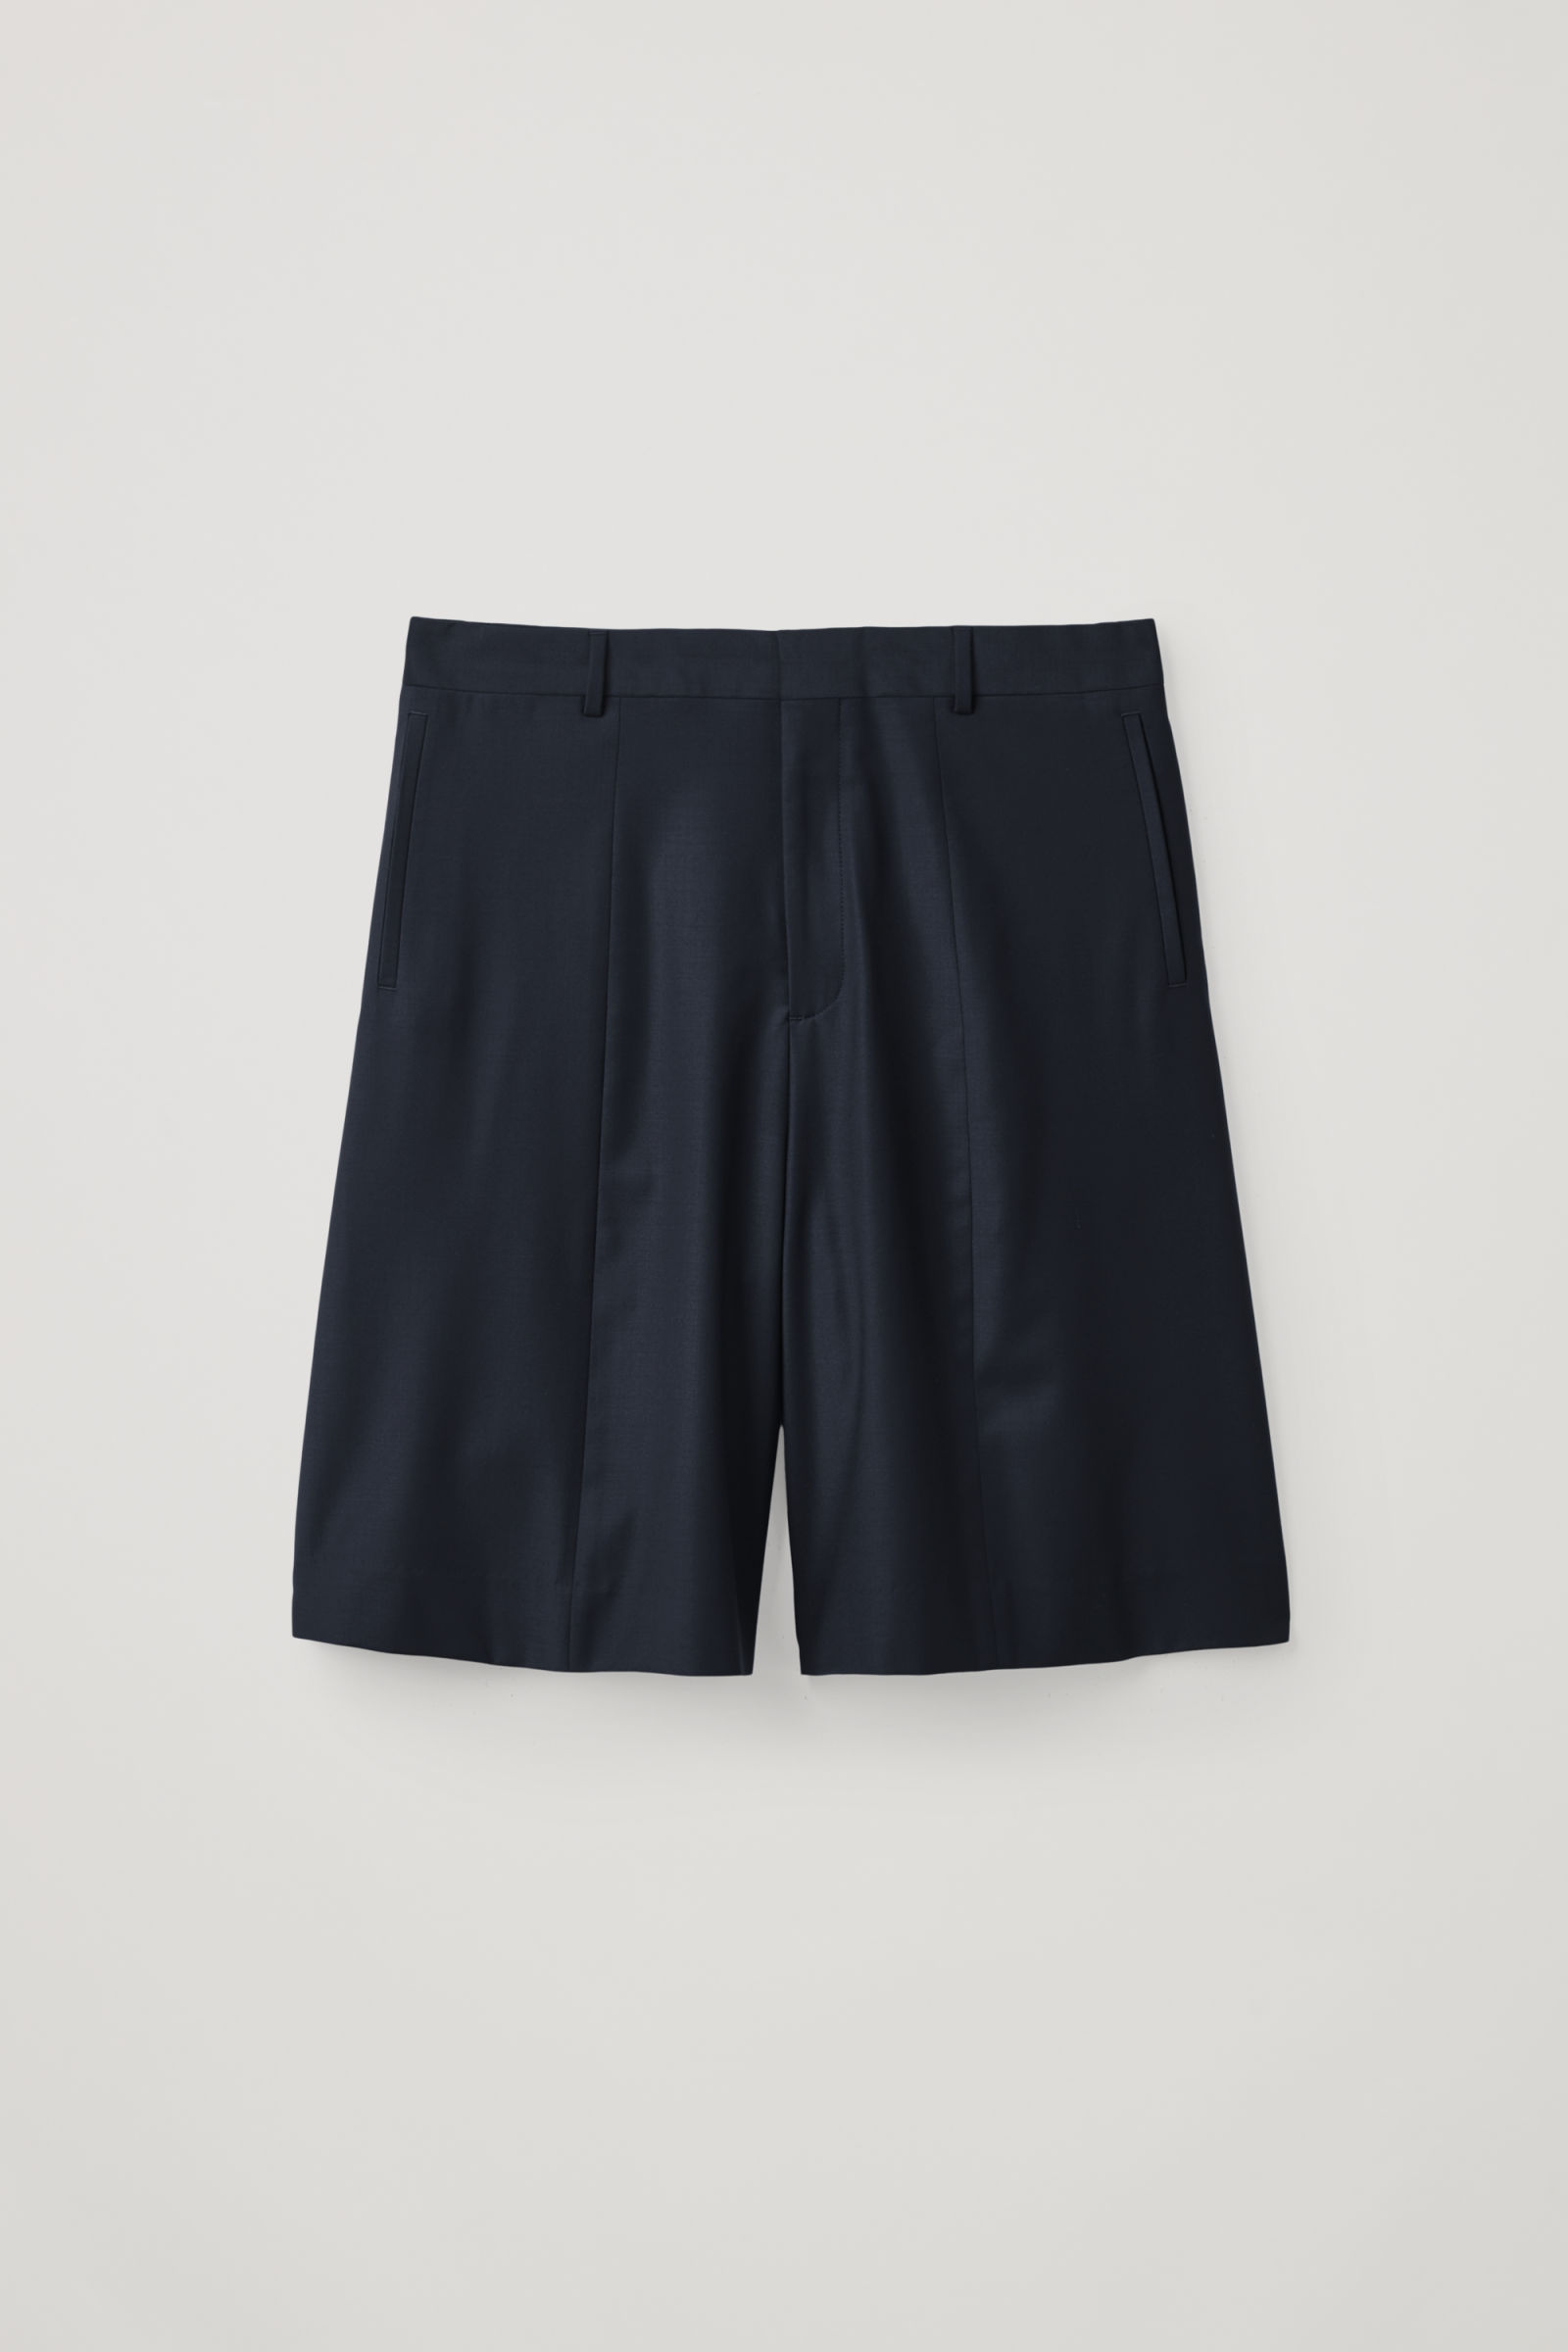 COS shorts - £59 - Obsessed with these pleated and tailored shorts which are perfect for a rakish summer night (especially when paired with the above jumper and a pair of sleek leather sandals)